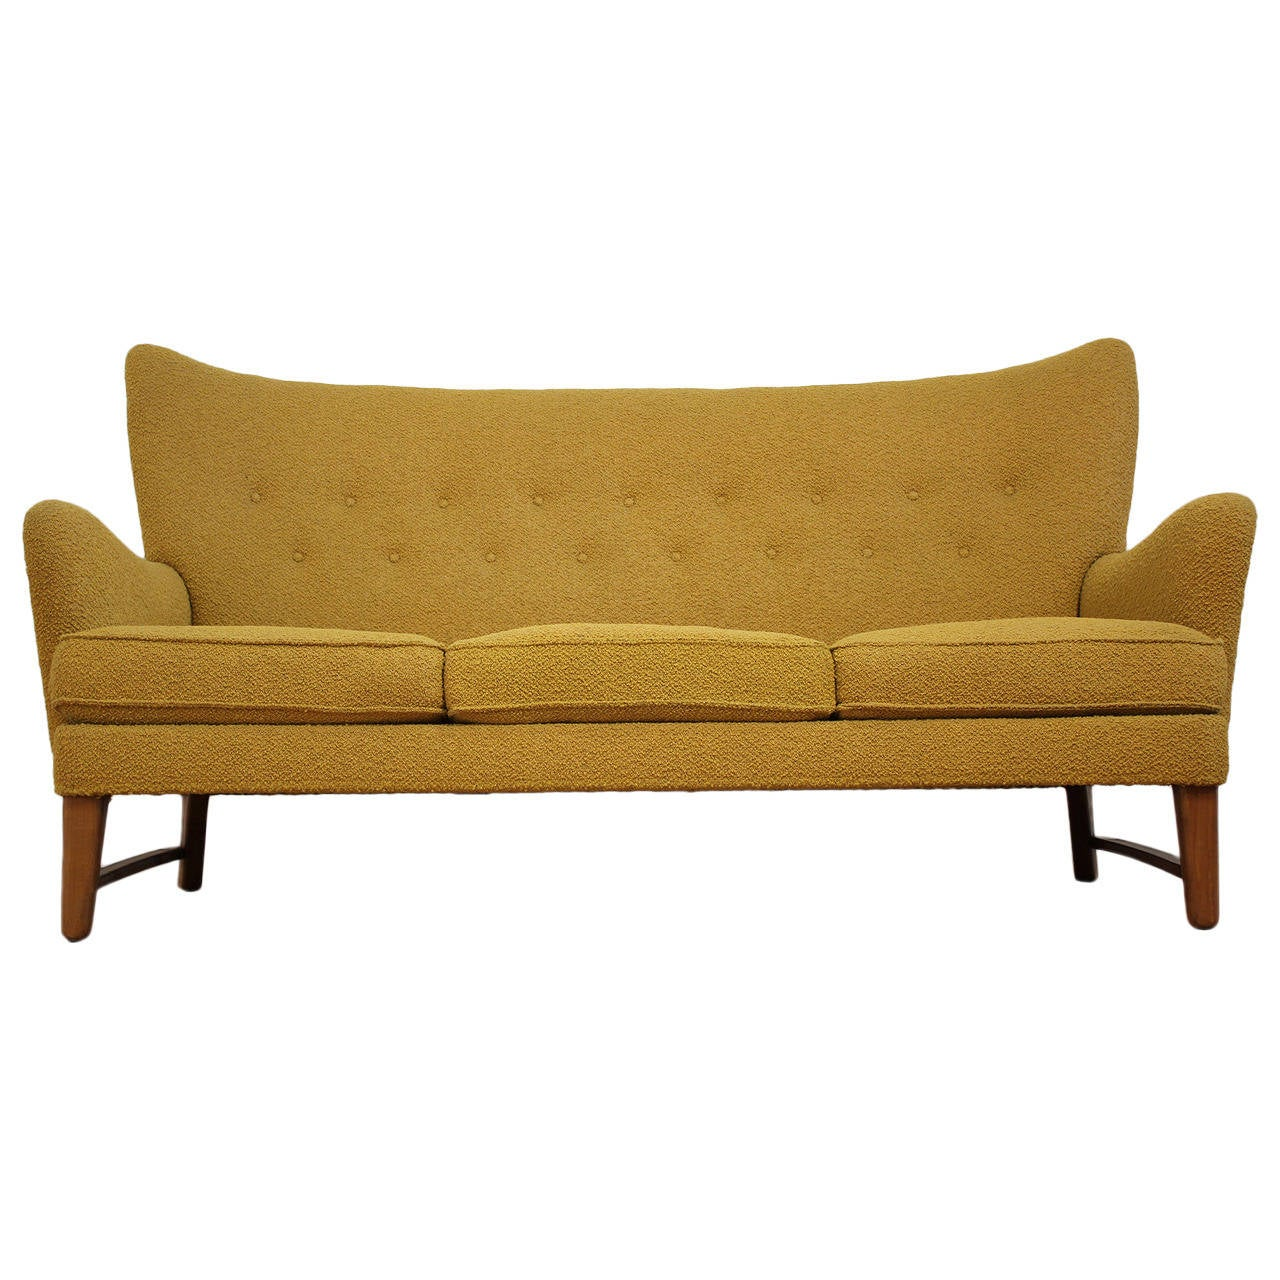 Scandinavian Furniture San Diego Early Scandinavian Wingback Sofa